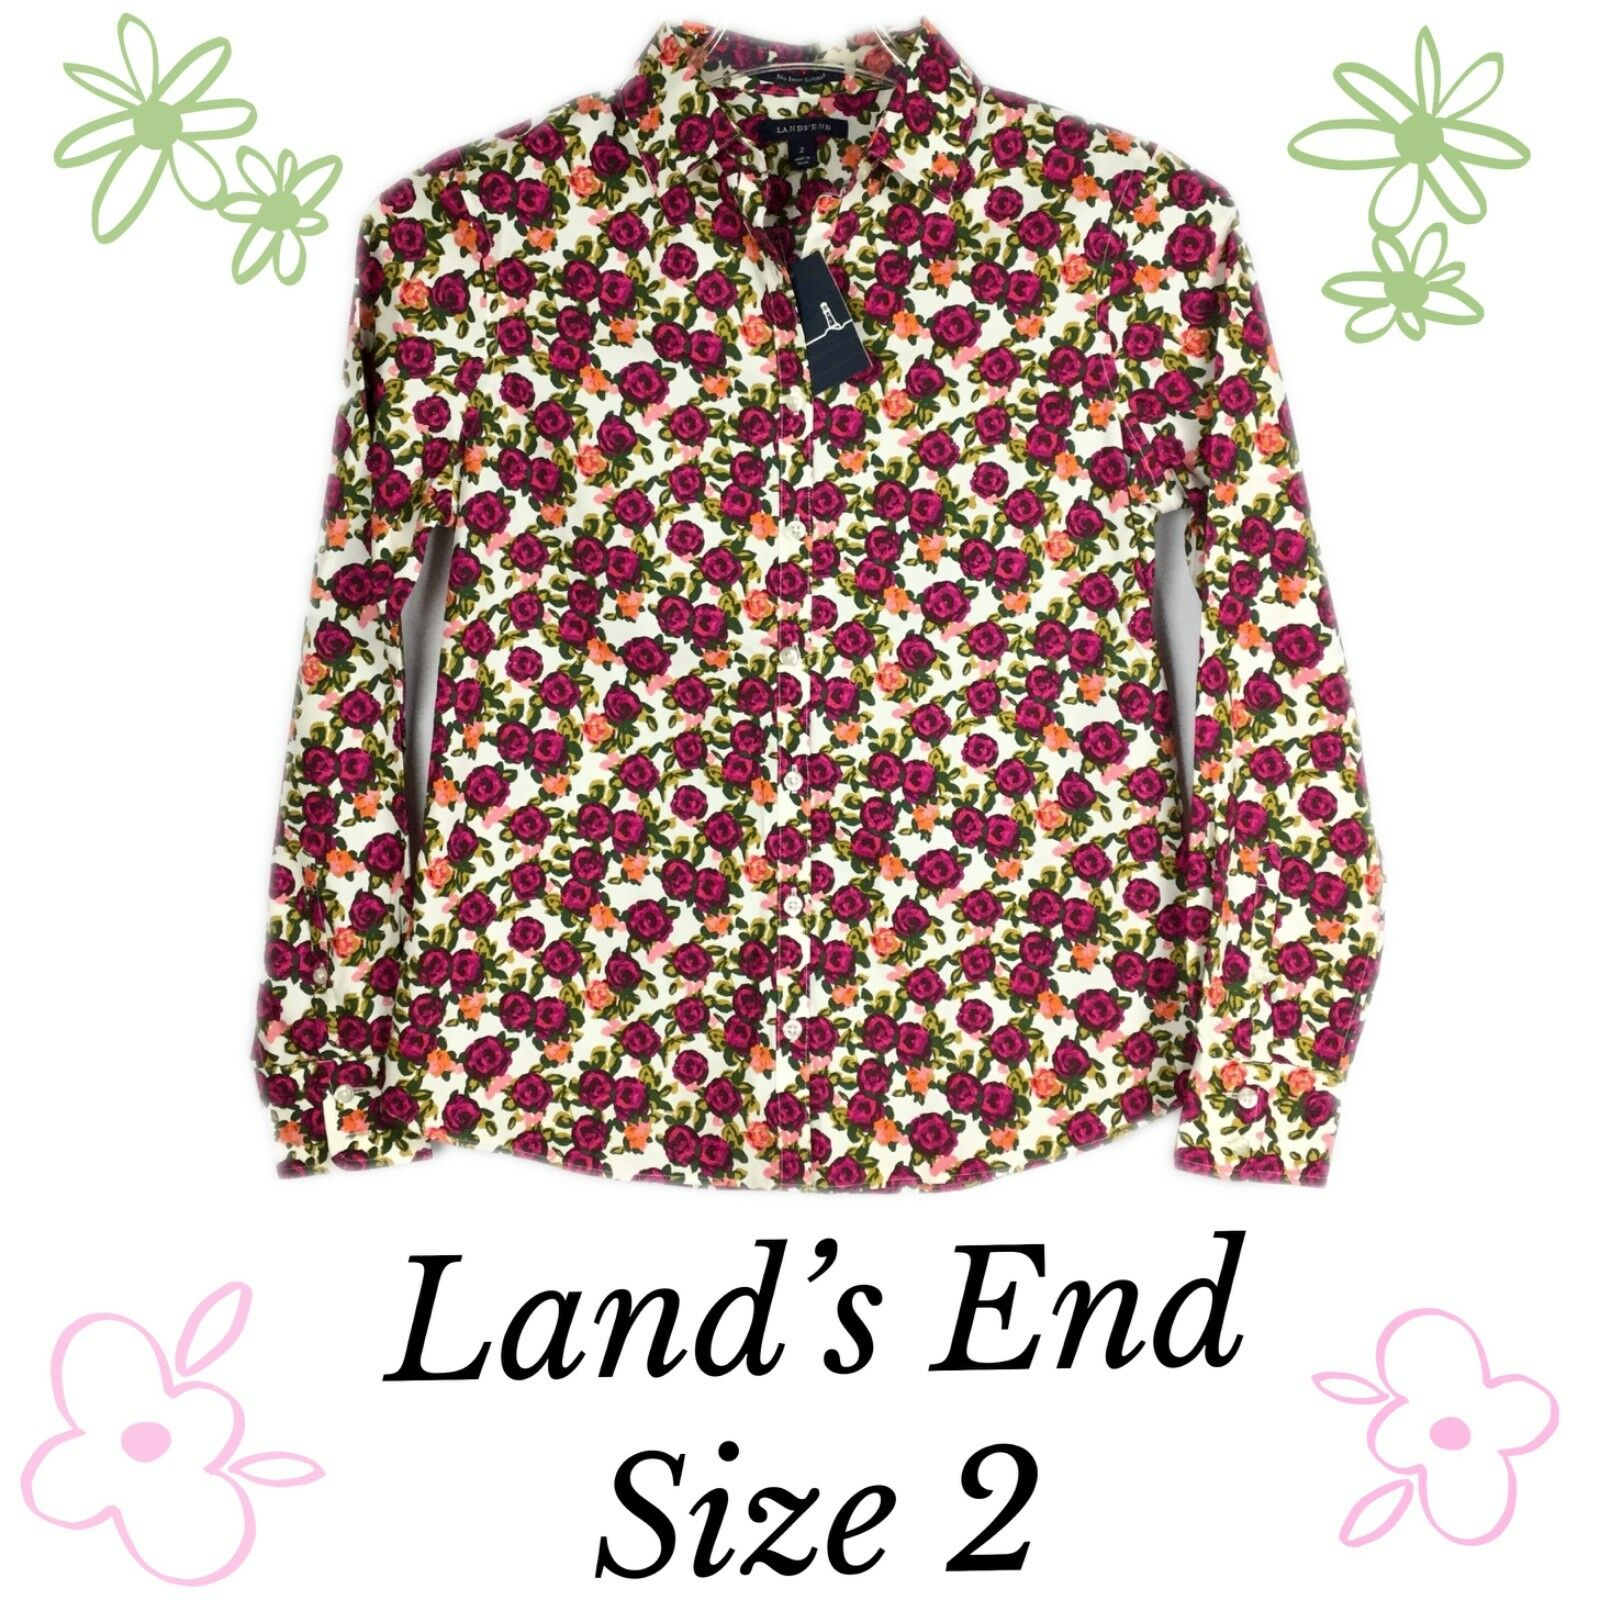 Lands End No Iron Supima Floral Womens Long Sleeve Shirt Size 2 Ebay